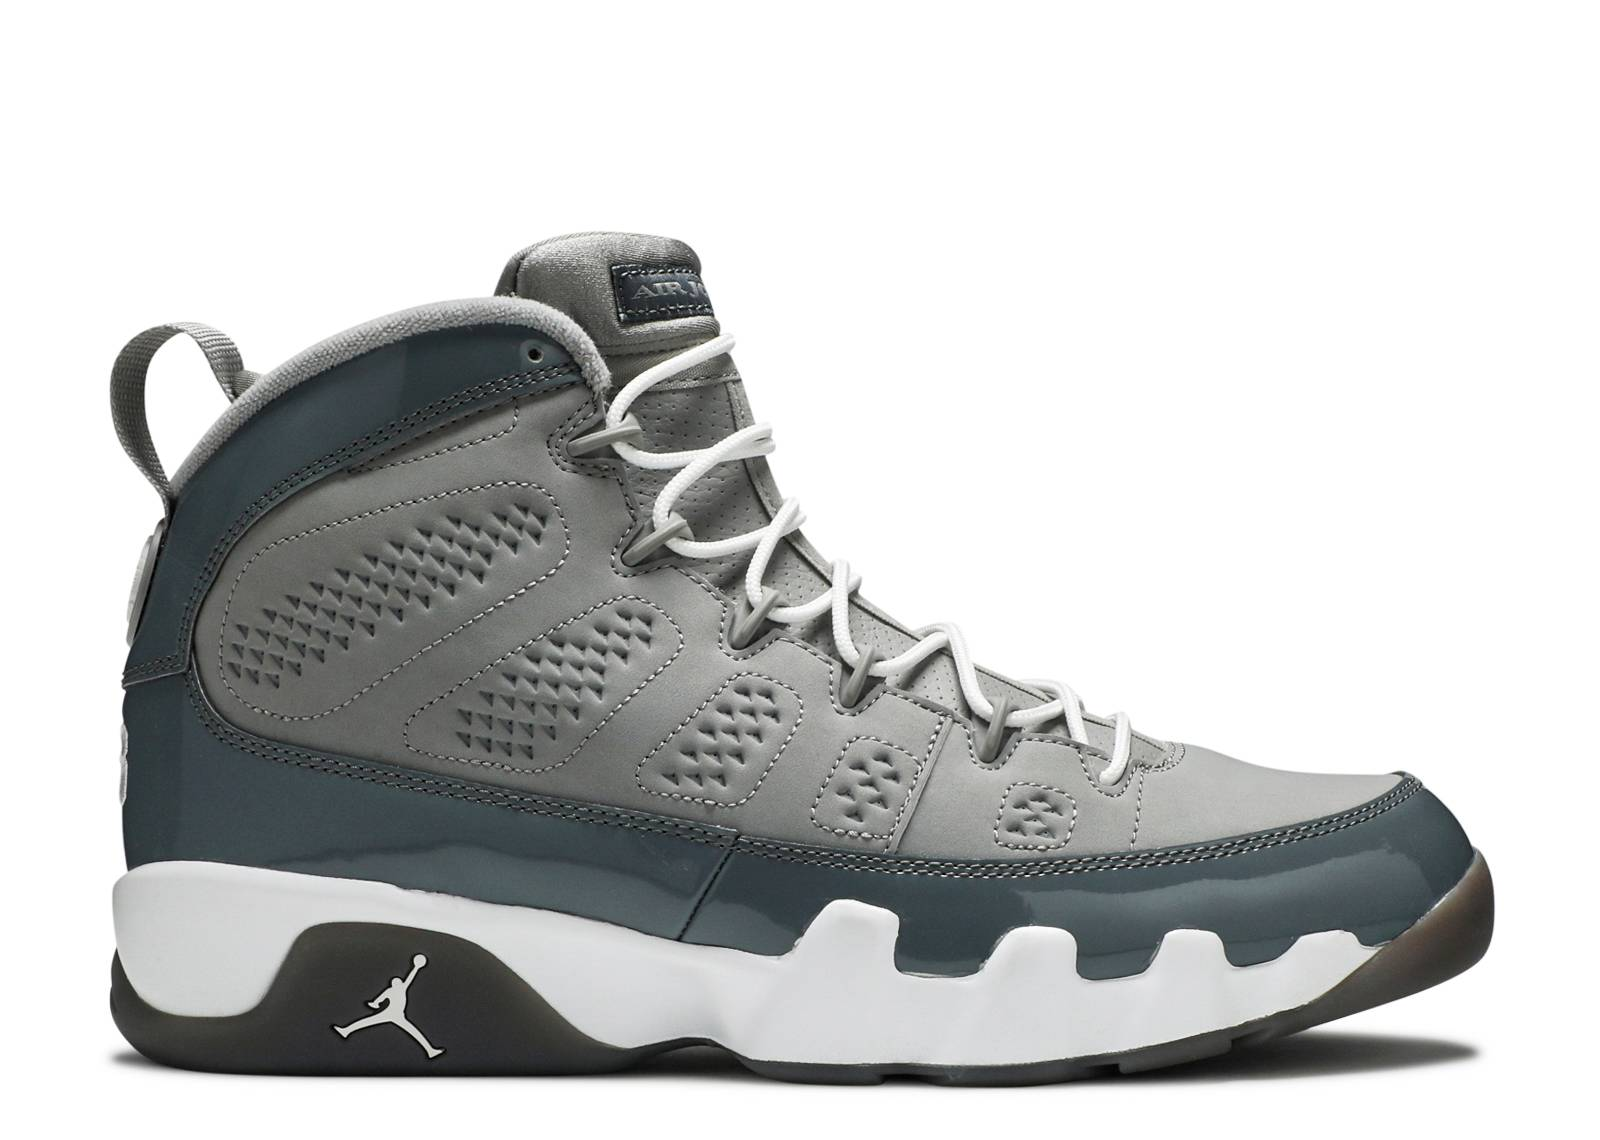 air jordan 9 retro cool grey 2012 release